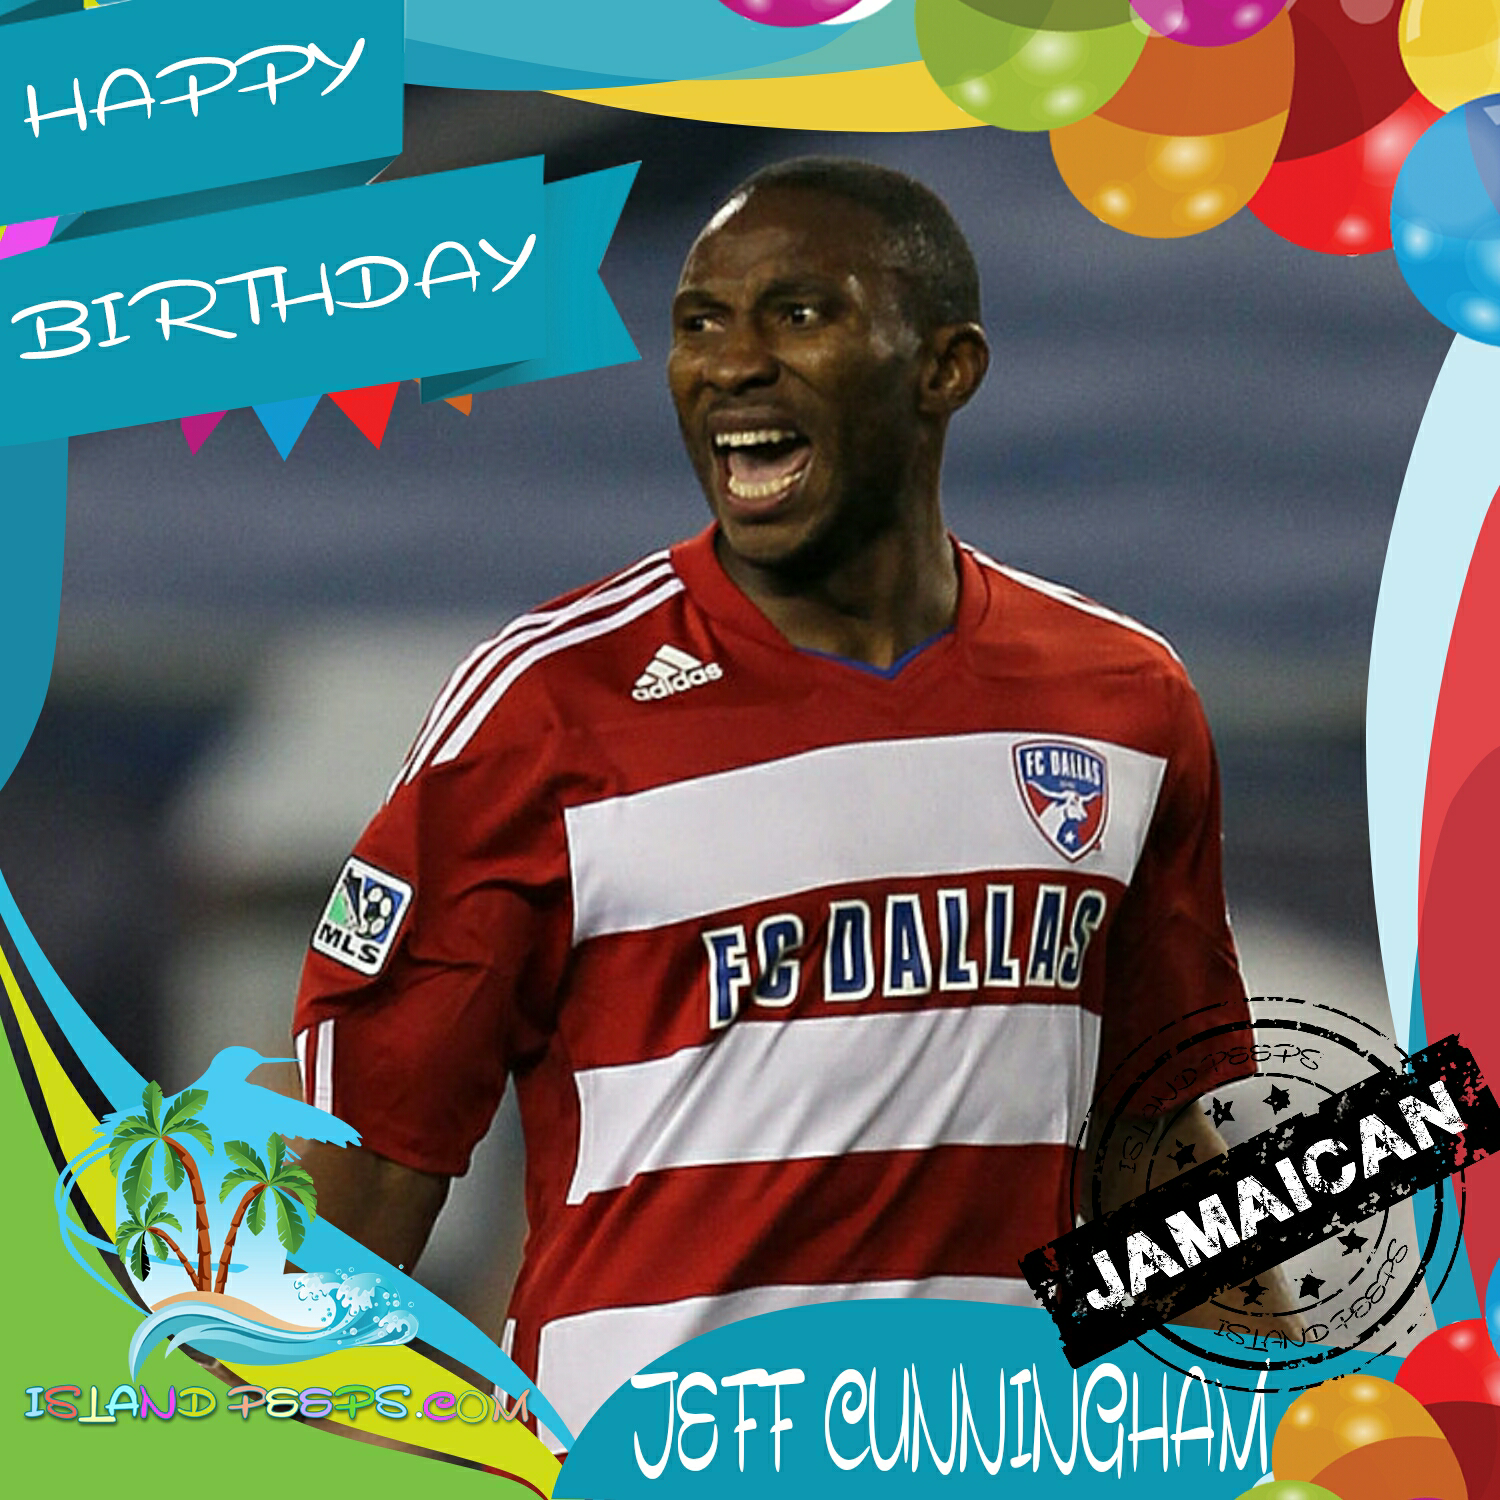 Happy Birthday Jeff Cunningham Major League Soccer Player Born In Jamaica Today We Celebrate You Jeffcunningham Isla Happy Birthday Jeff Major League Soccer Soccer Players